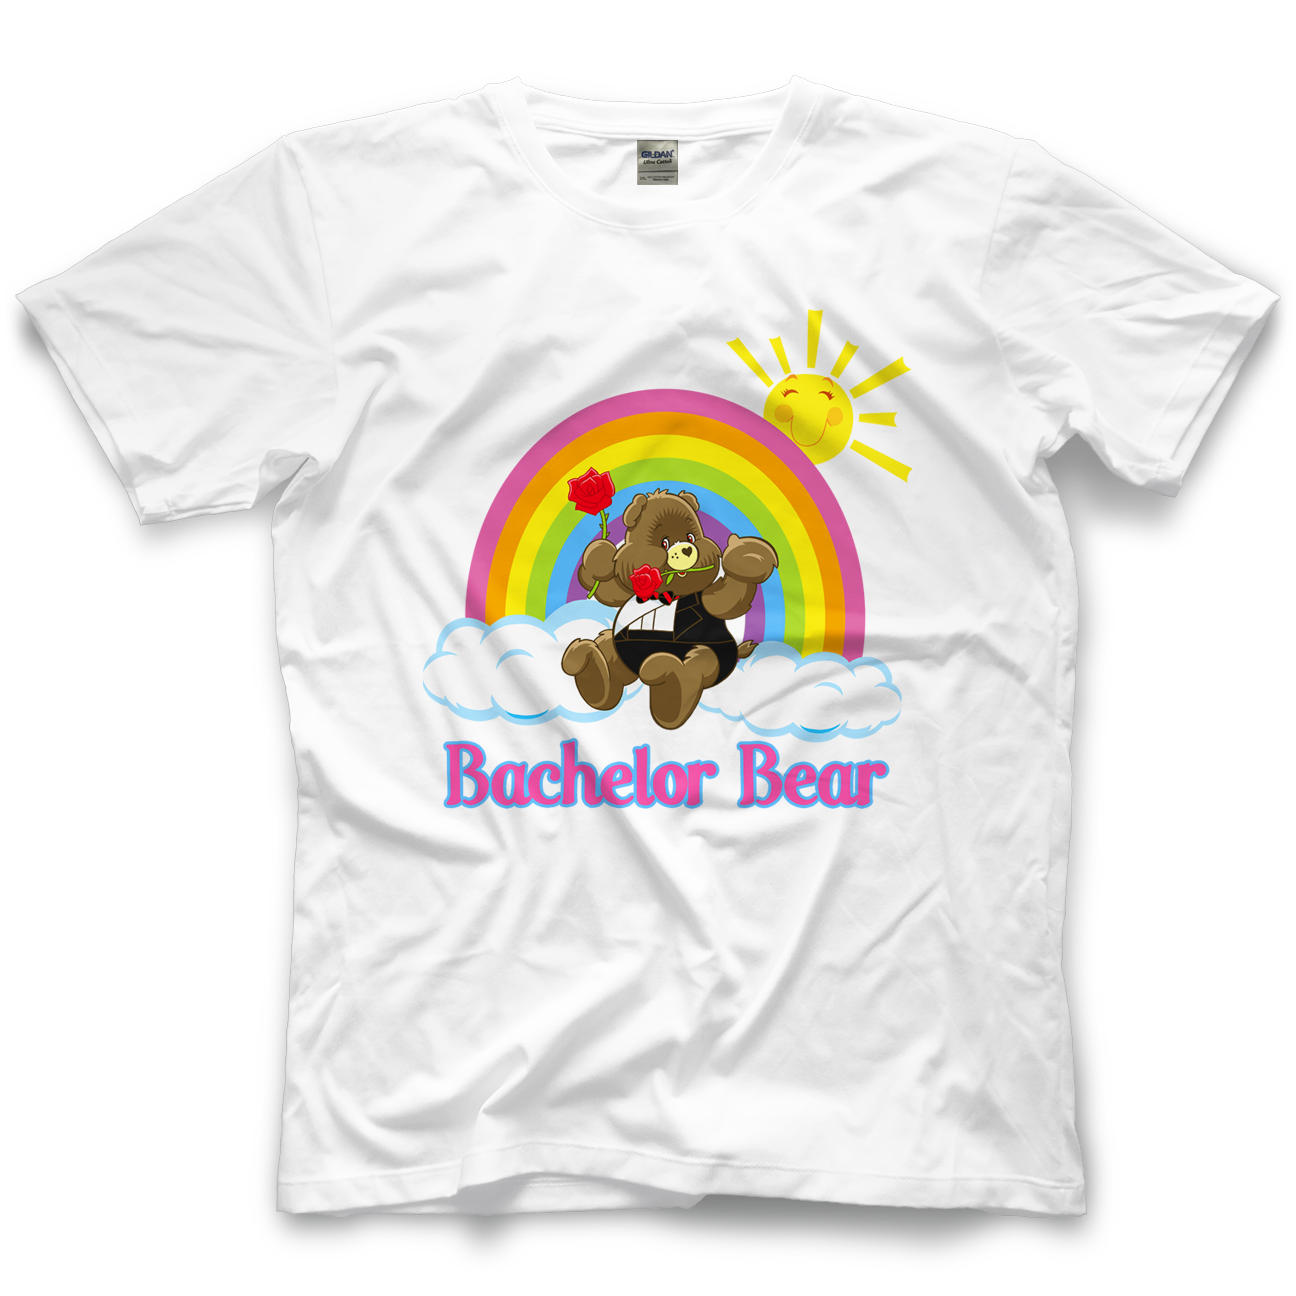 Bachelor Bear White